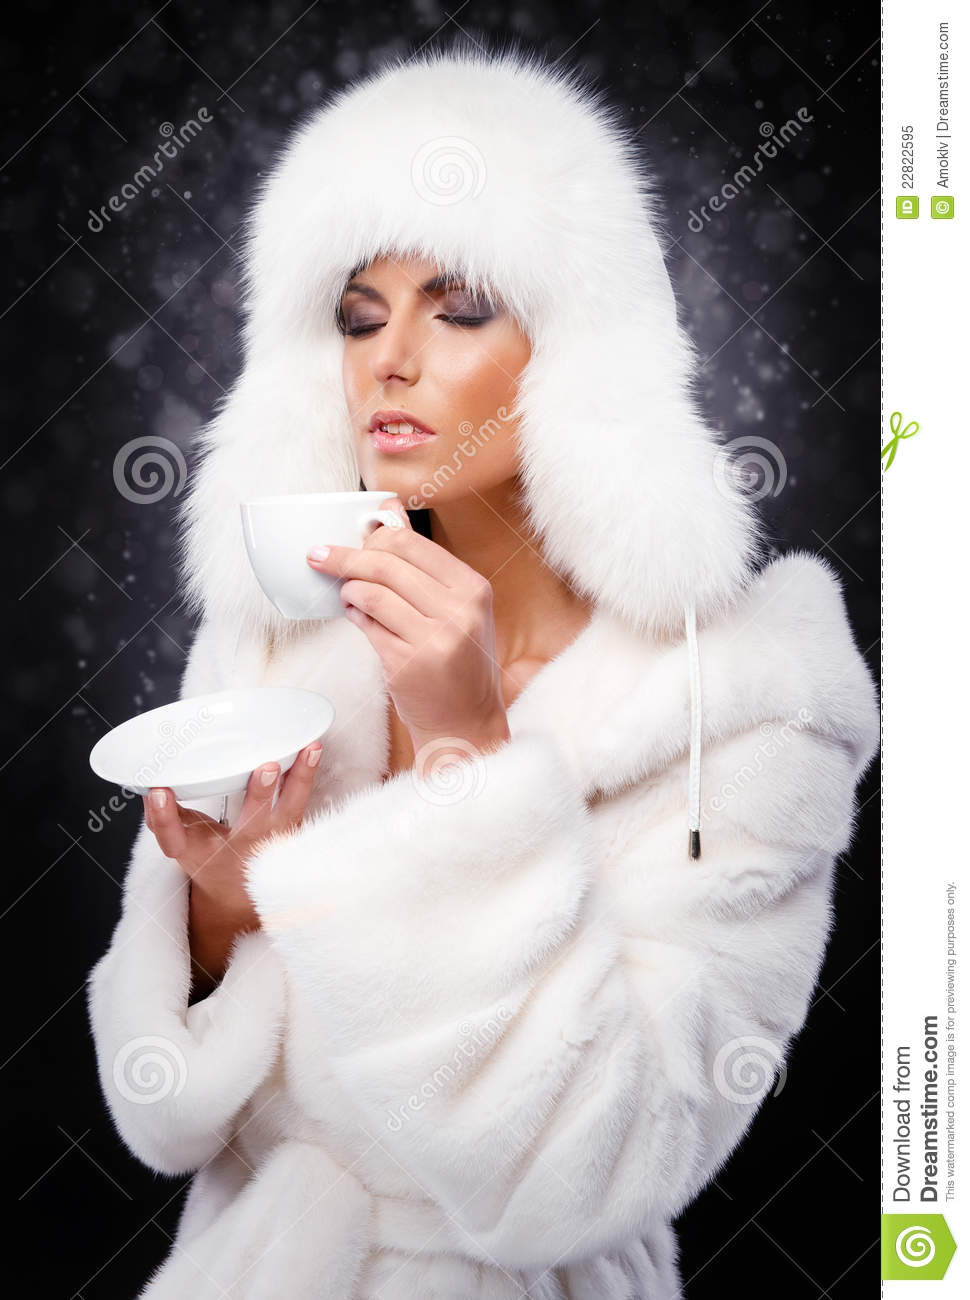 Drinking Girl Wallpaper Download Woman In White Fur Coat And Cap Drinking Coffee Stock